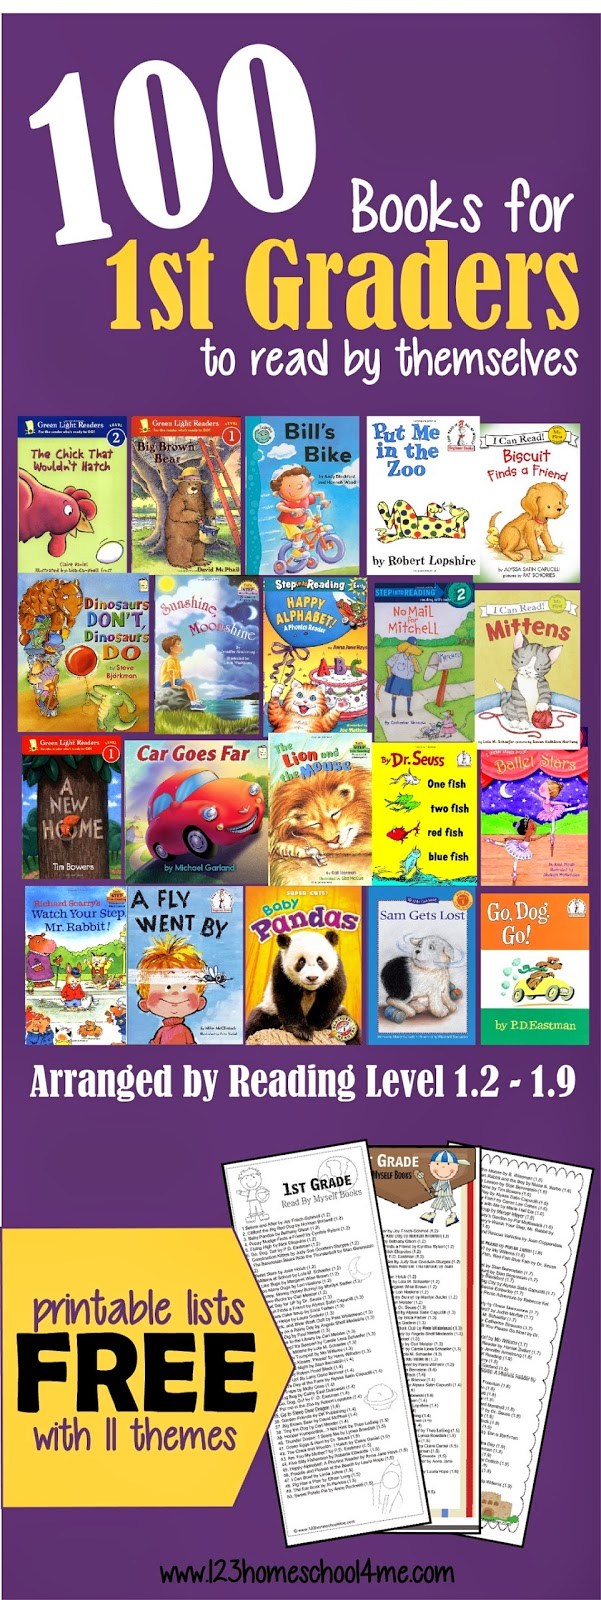 Worksheet First Grade Free Books 100 books for first graders to read themselves by reading level